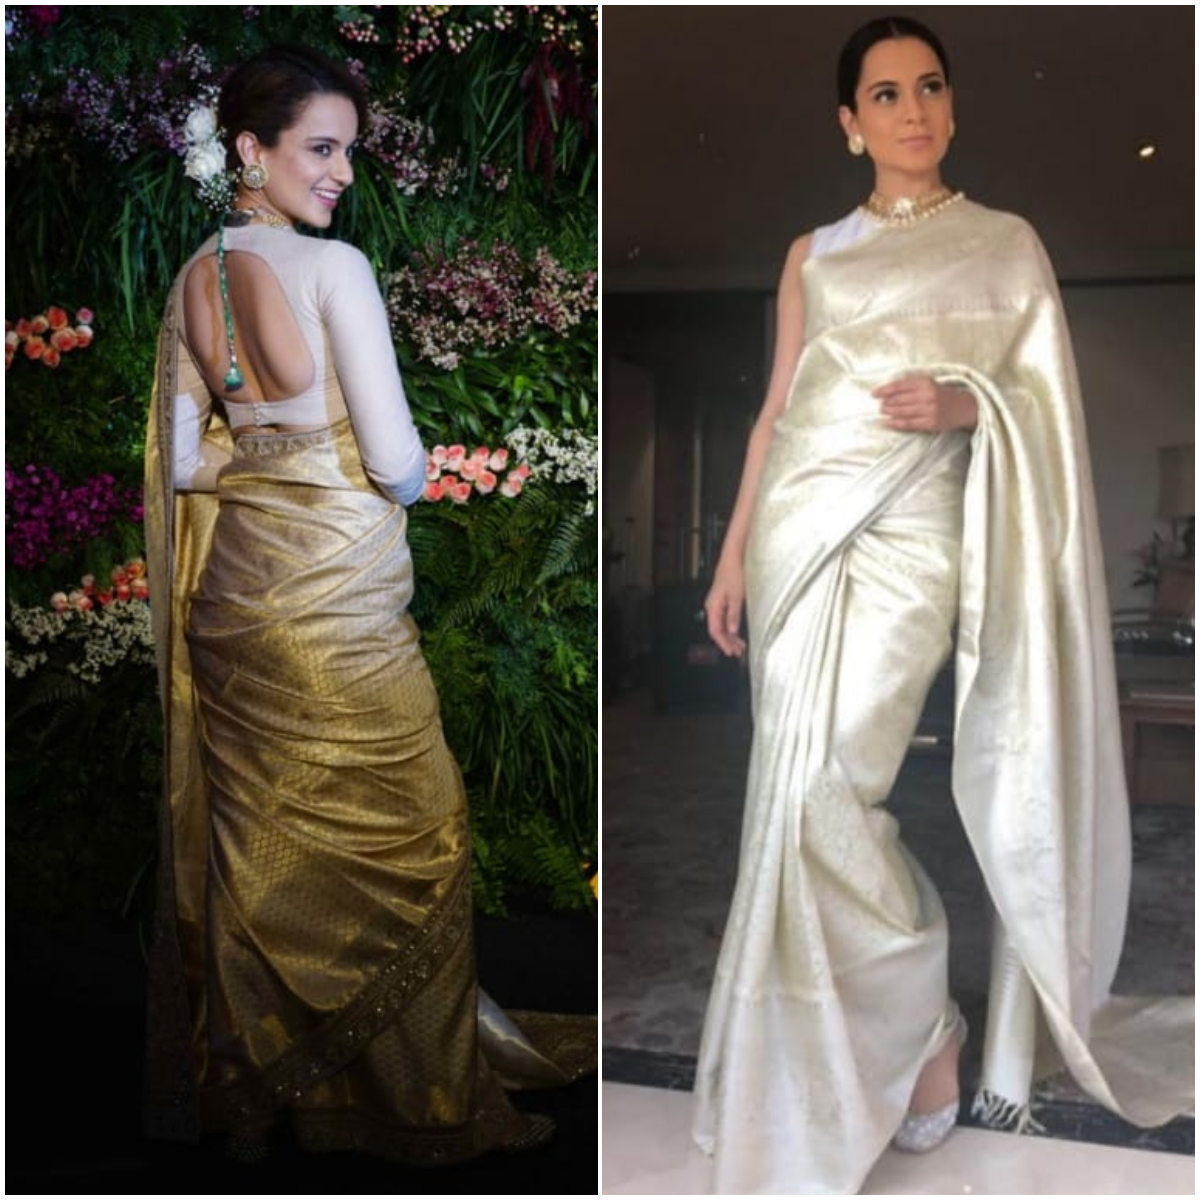 Kangana Ranaut shows how to style your saree in 7 different ways this National Handloom Day | PINKVILLA